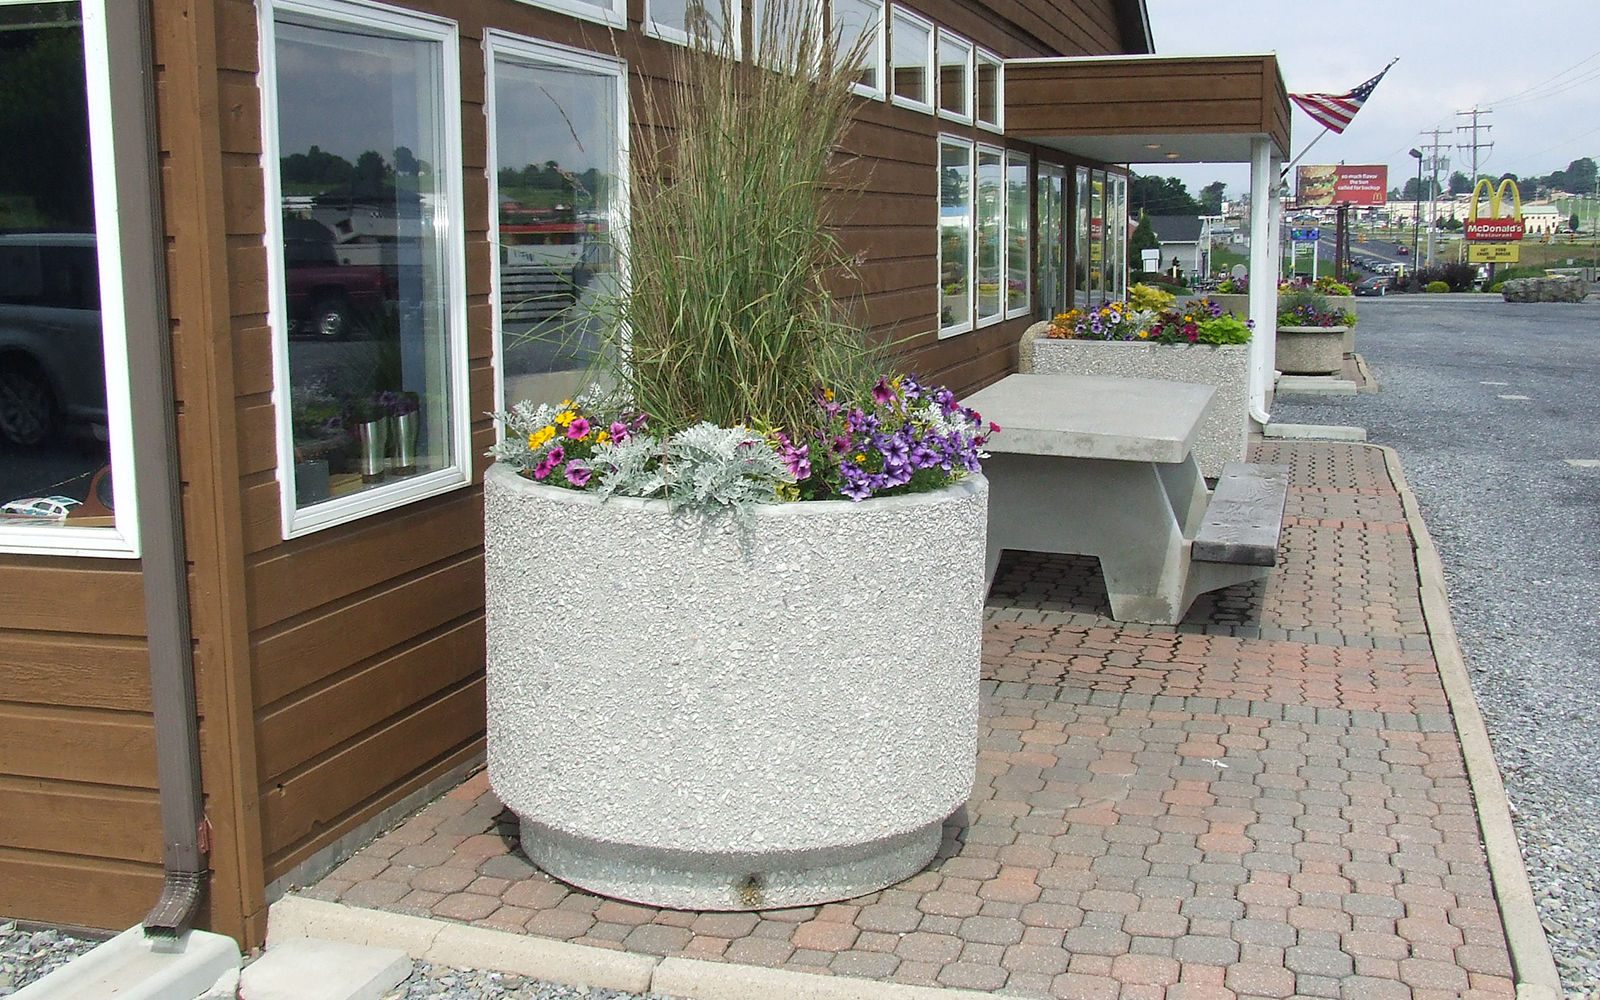 round-planter-with-flowers